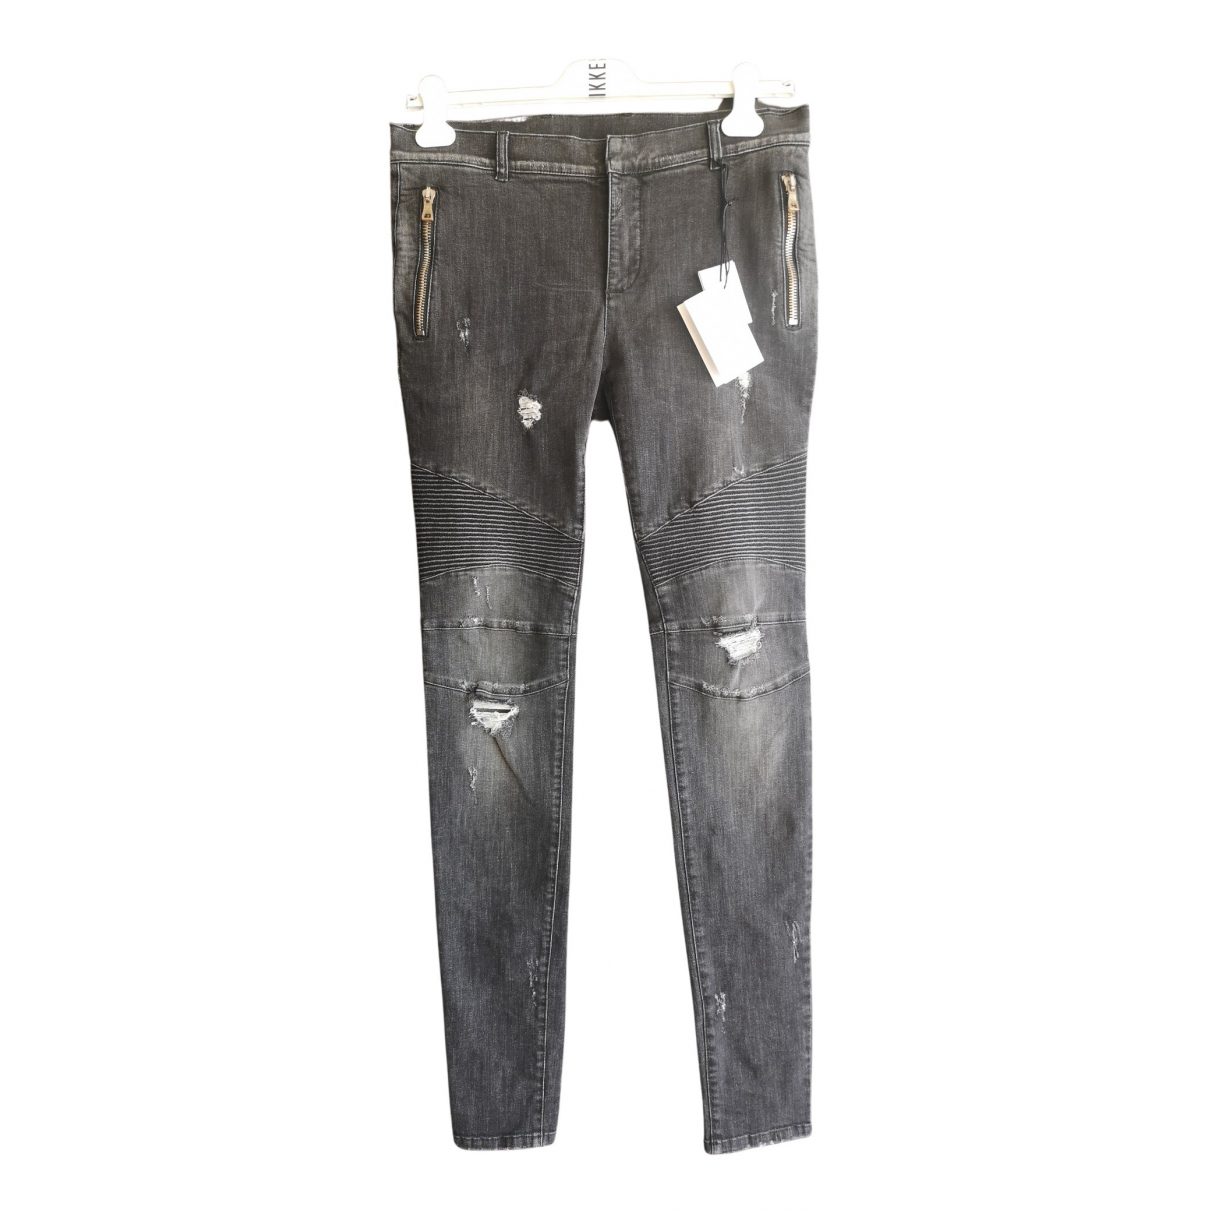 Balmain N Black Cotton Jeans for Men 33 US